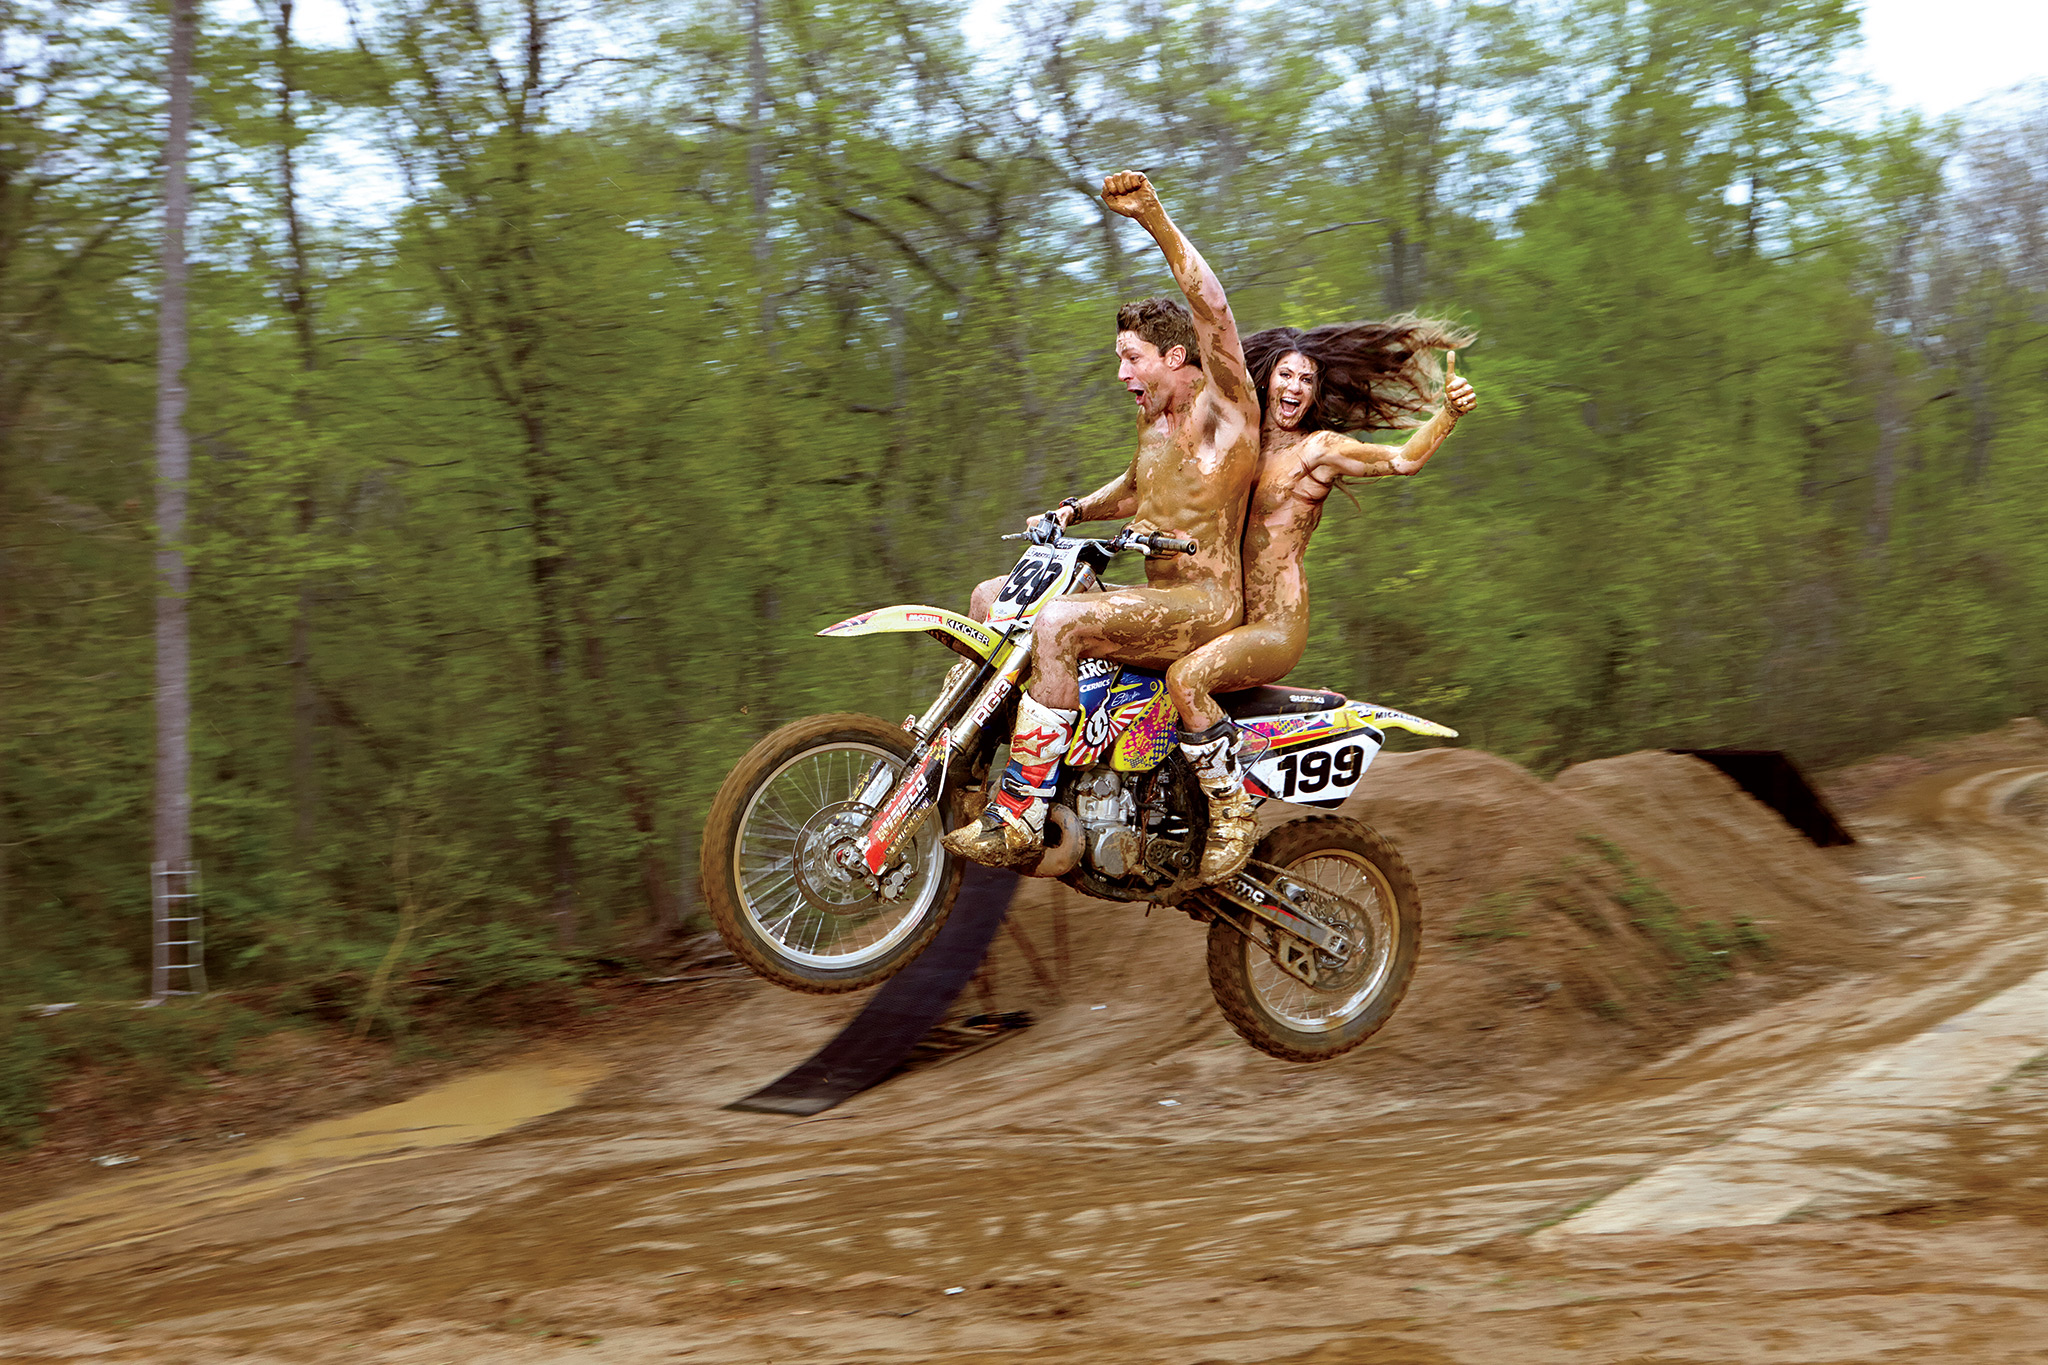 Travis Pastrana, Lyn-Z Pastrana, ESPN The Bodies We Want 2014, The Body Isue 2014, Lyn-Z Pastrana nude